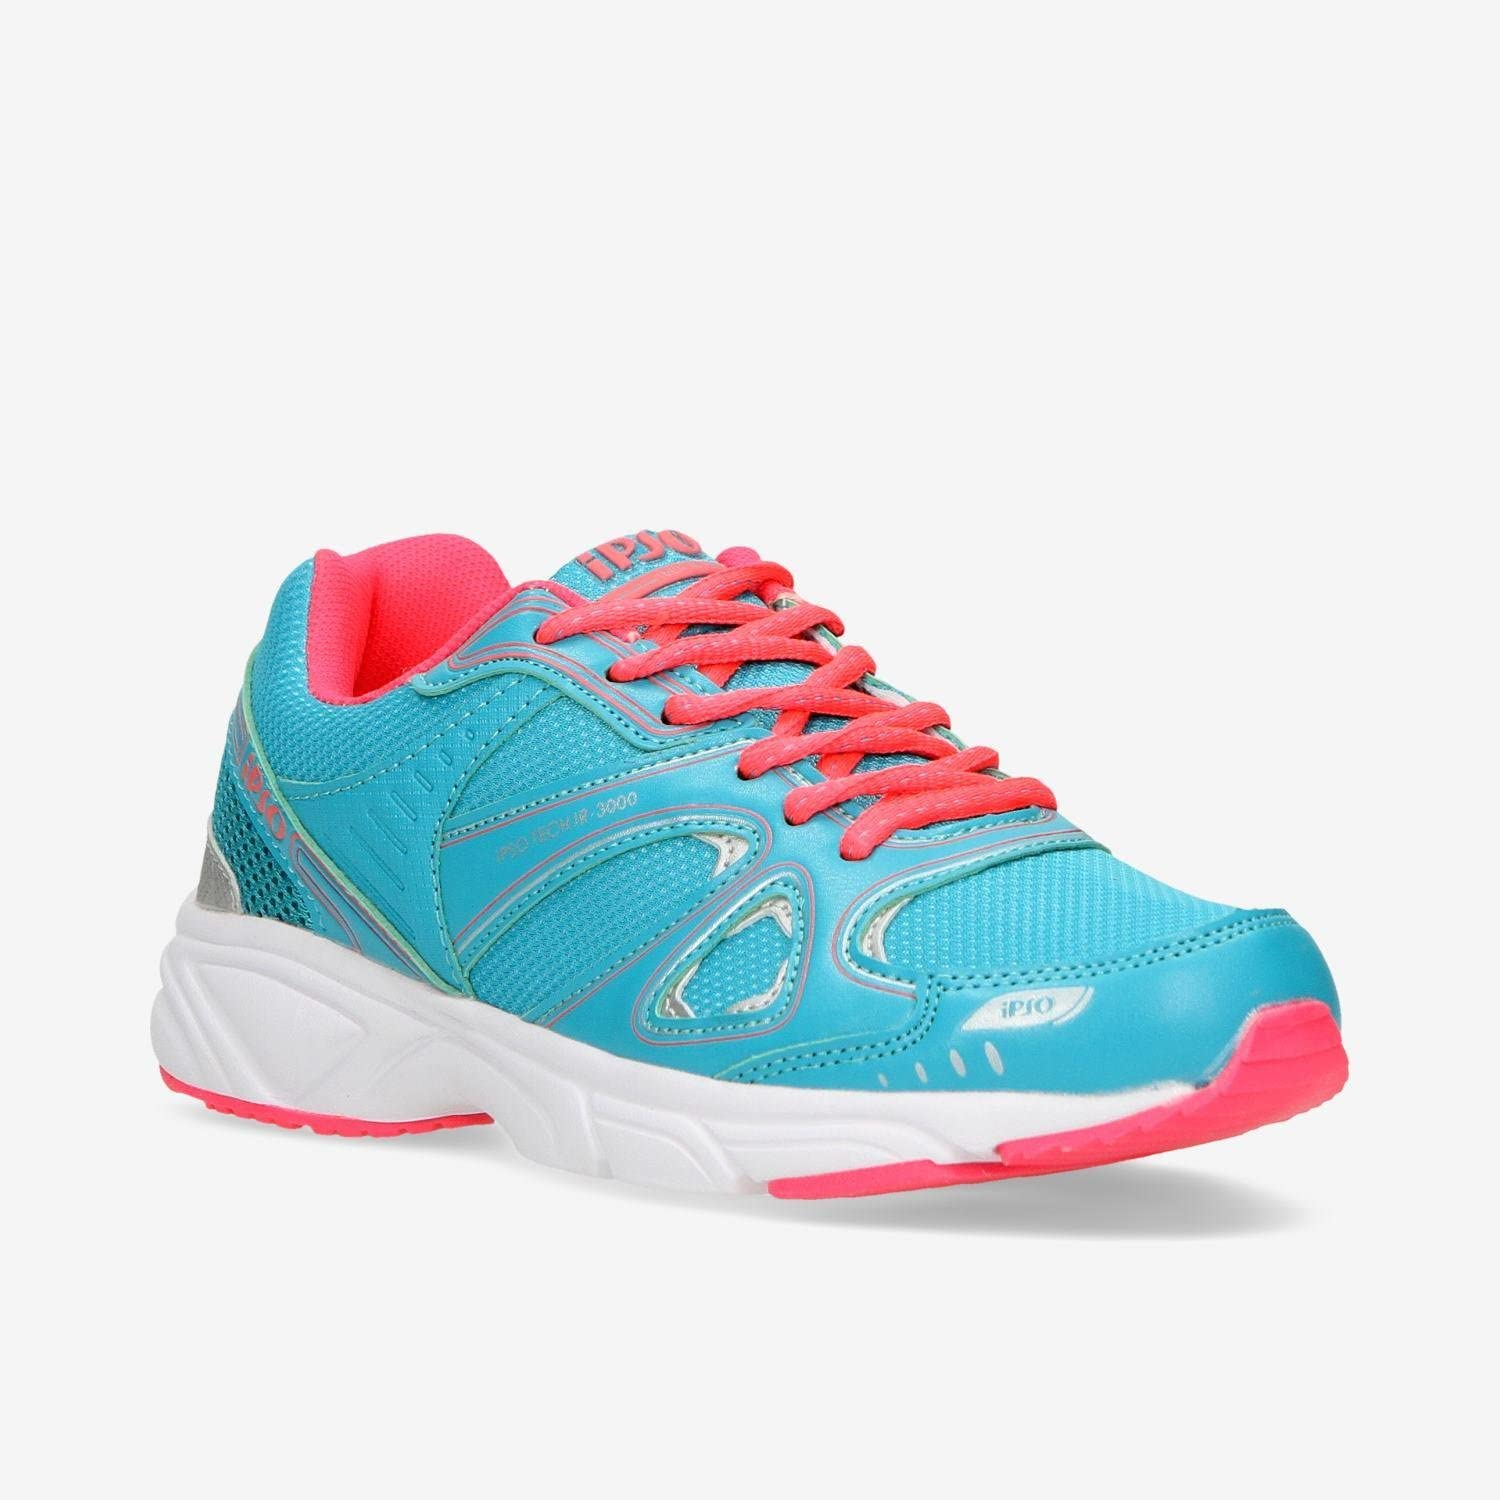 IPSO Zapatillas Running Azules Tech ir-3000 (Talla: 40): Amazon.es ...